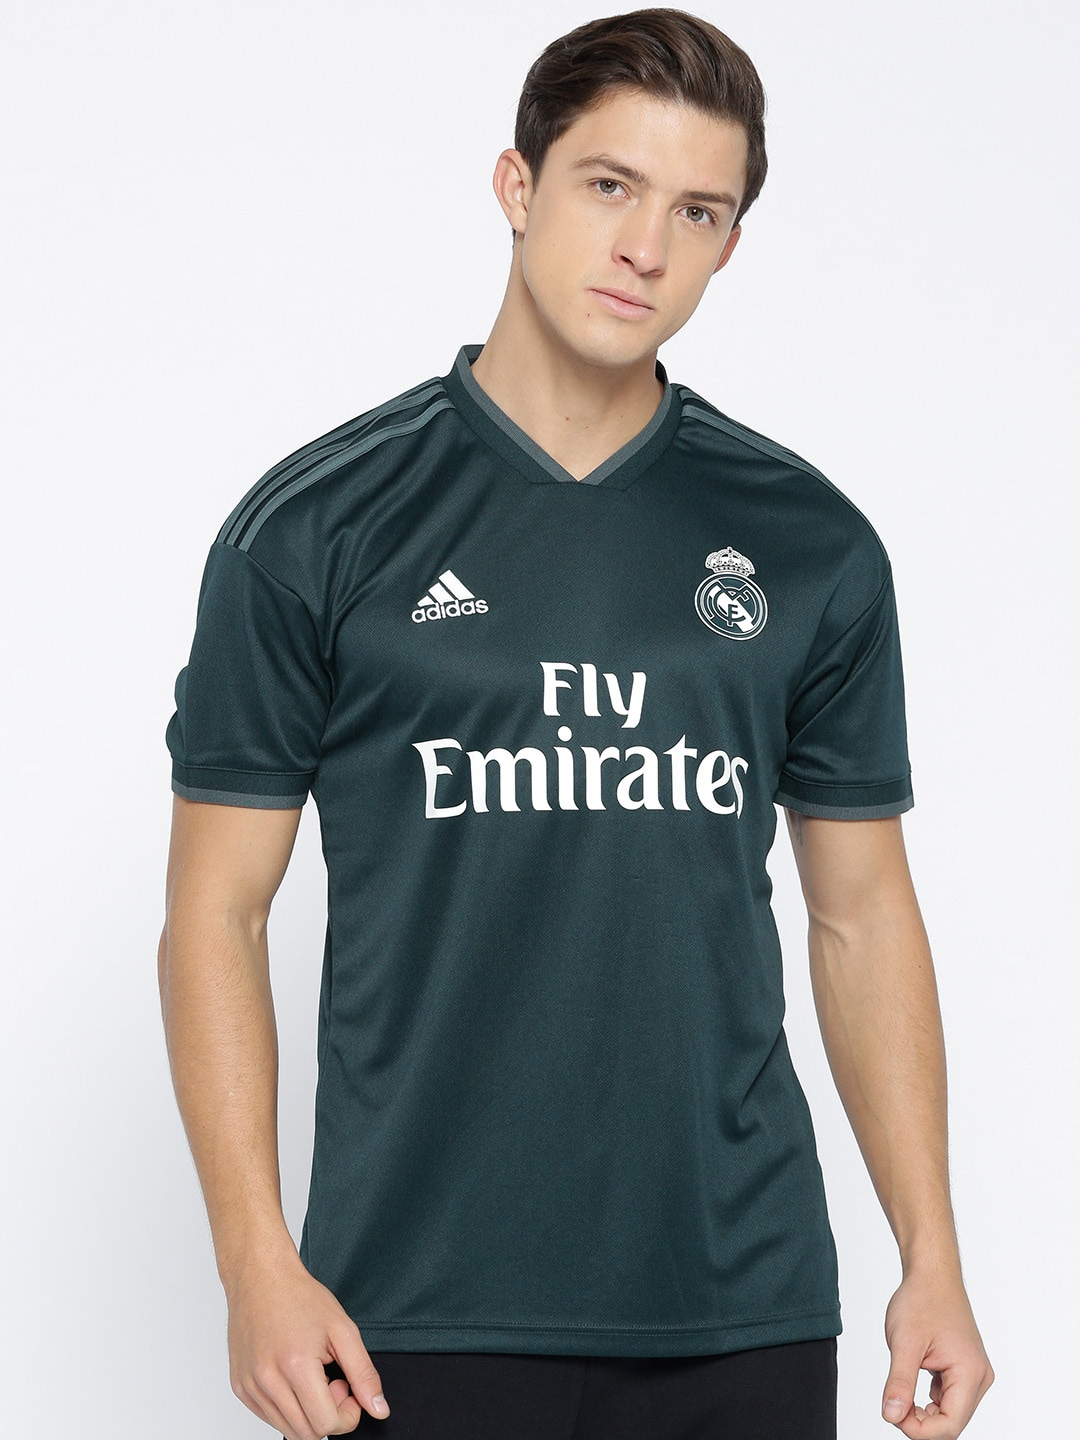 Football Jerseys - Buy Football Jersey Online in India  10e86eac9